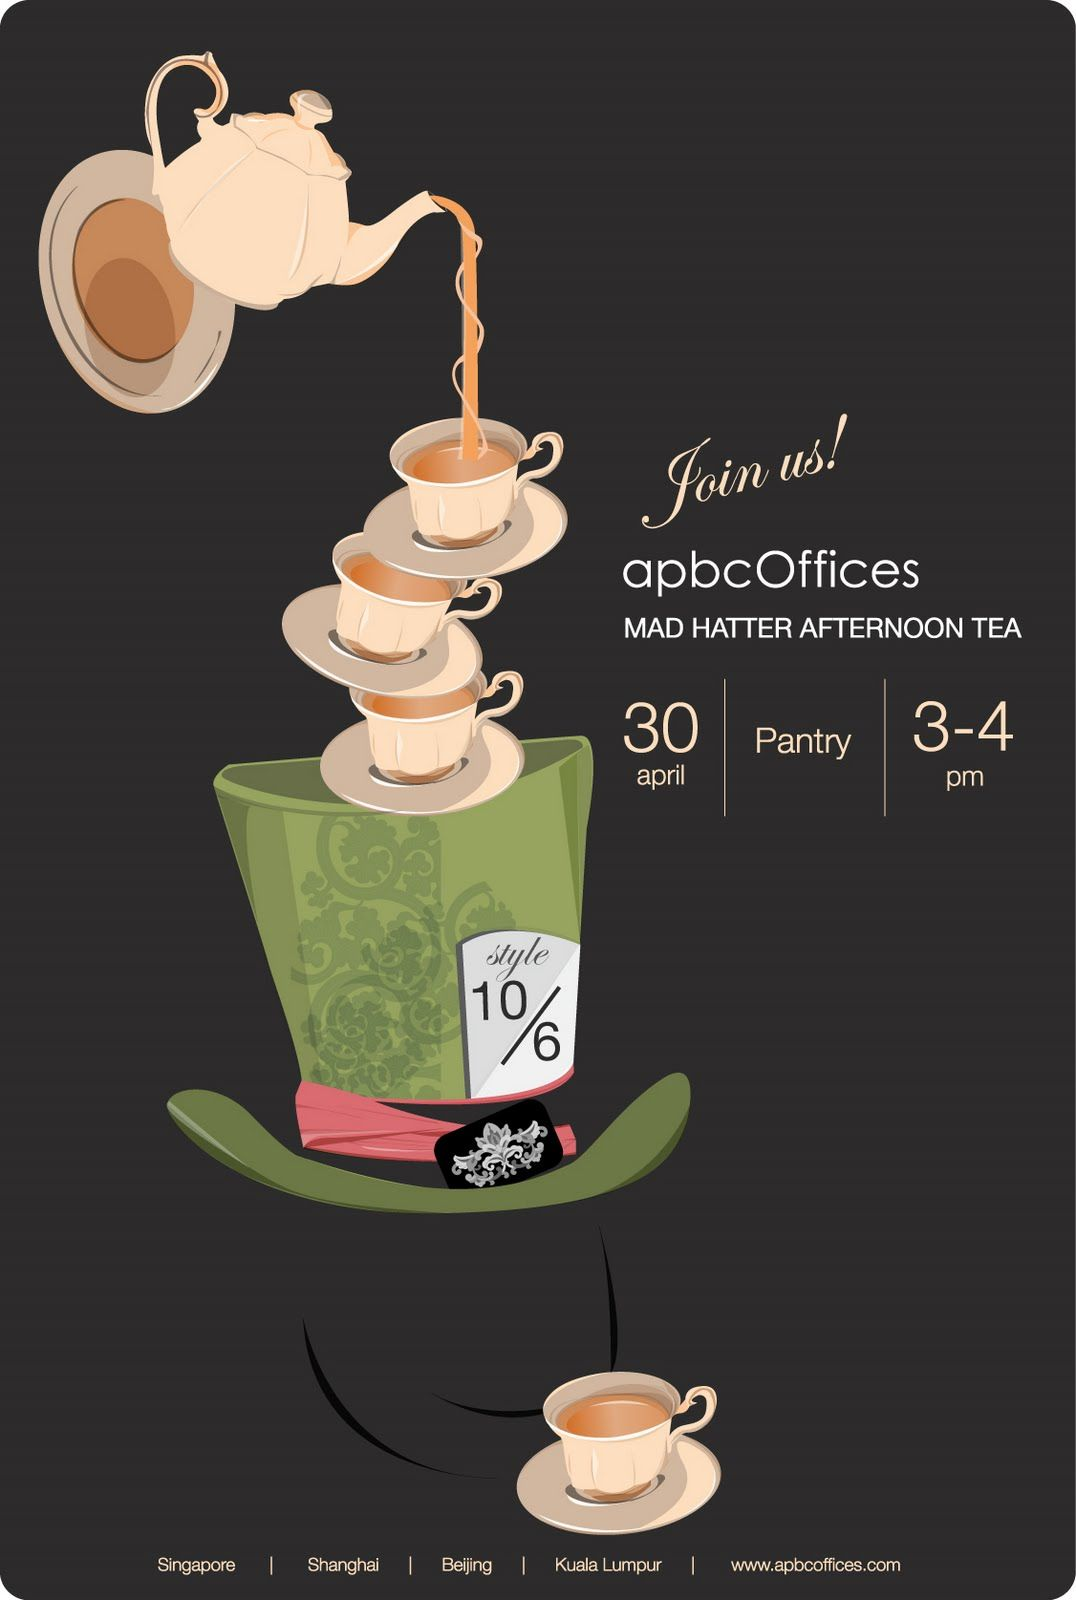 mad hatter teparty invitations pinterest%0A Mad Hatter tea party